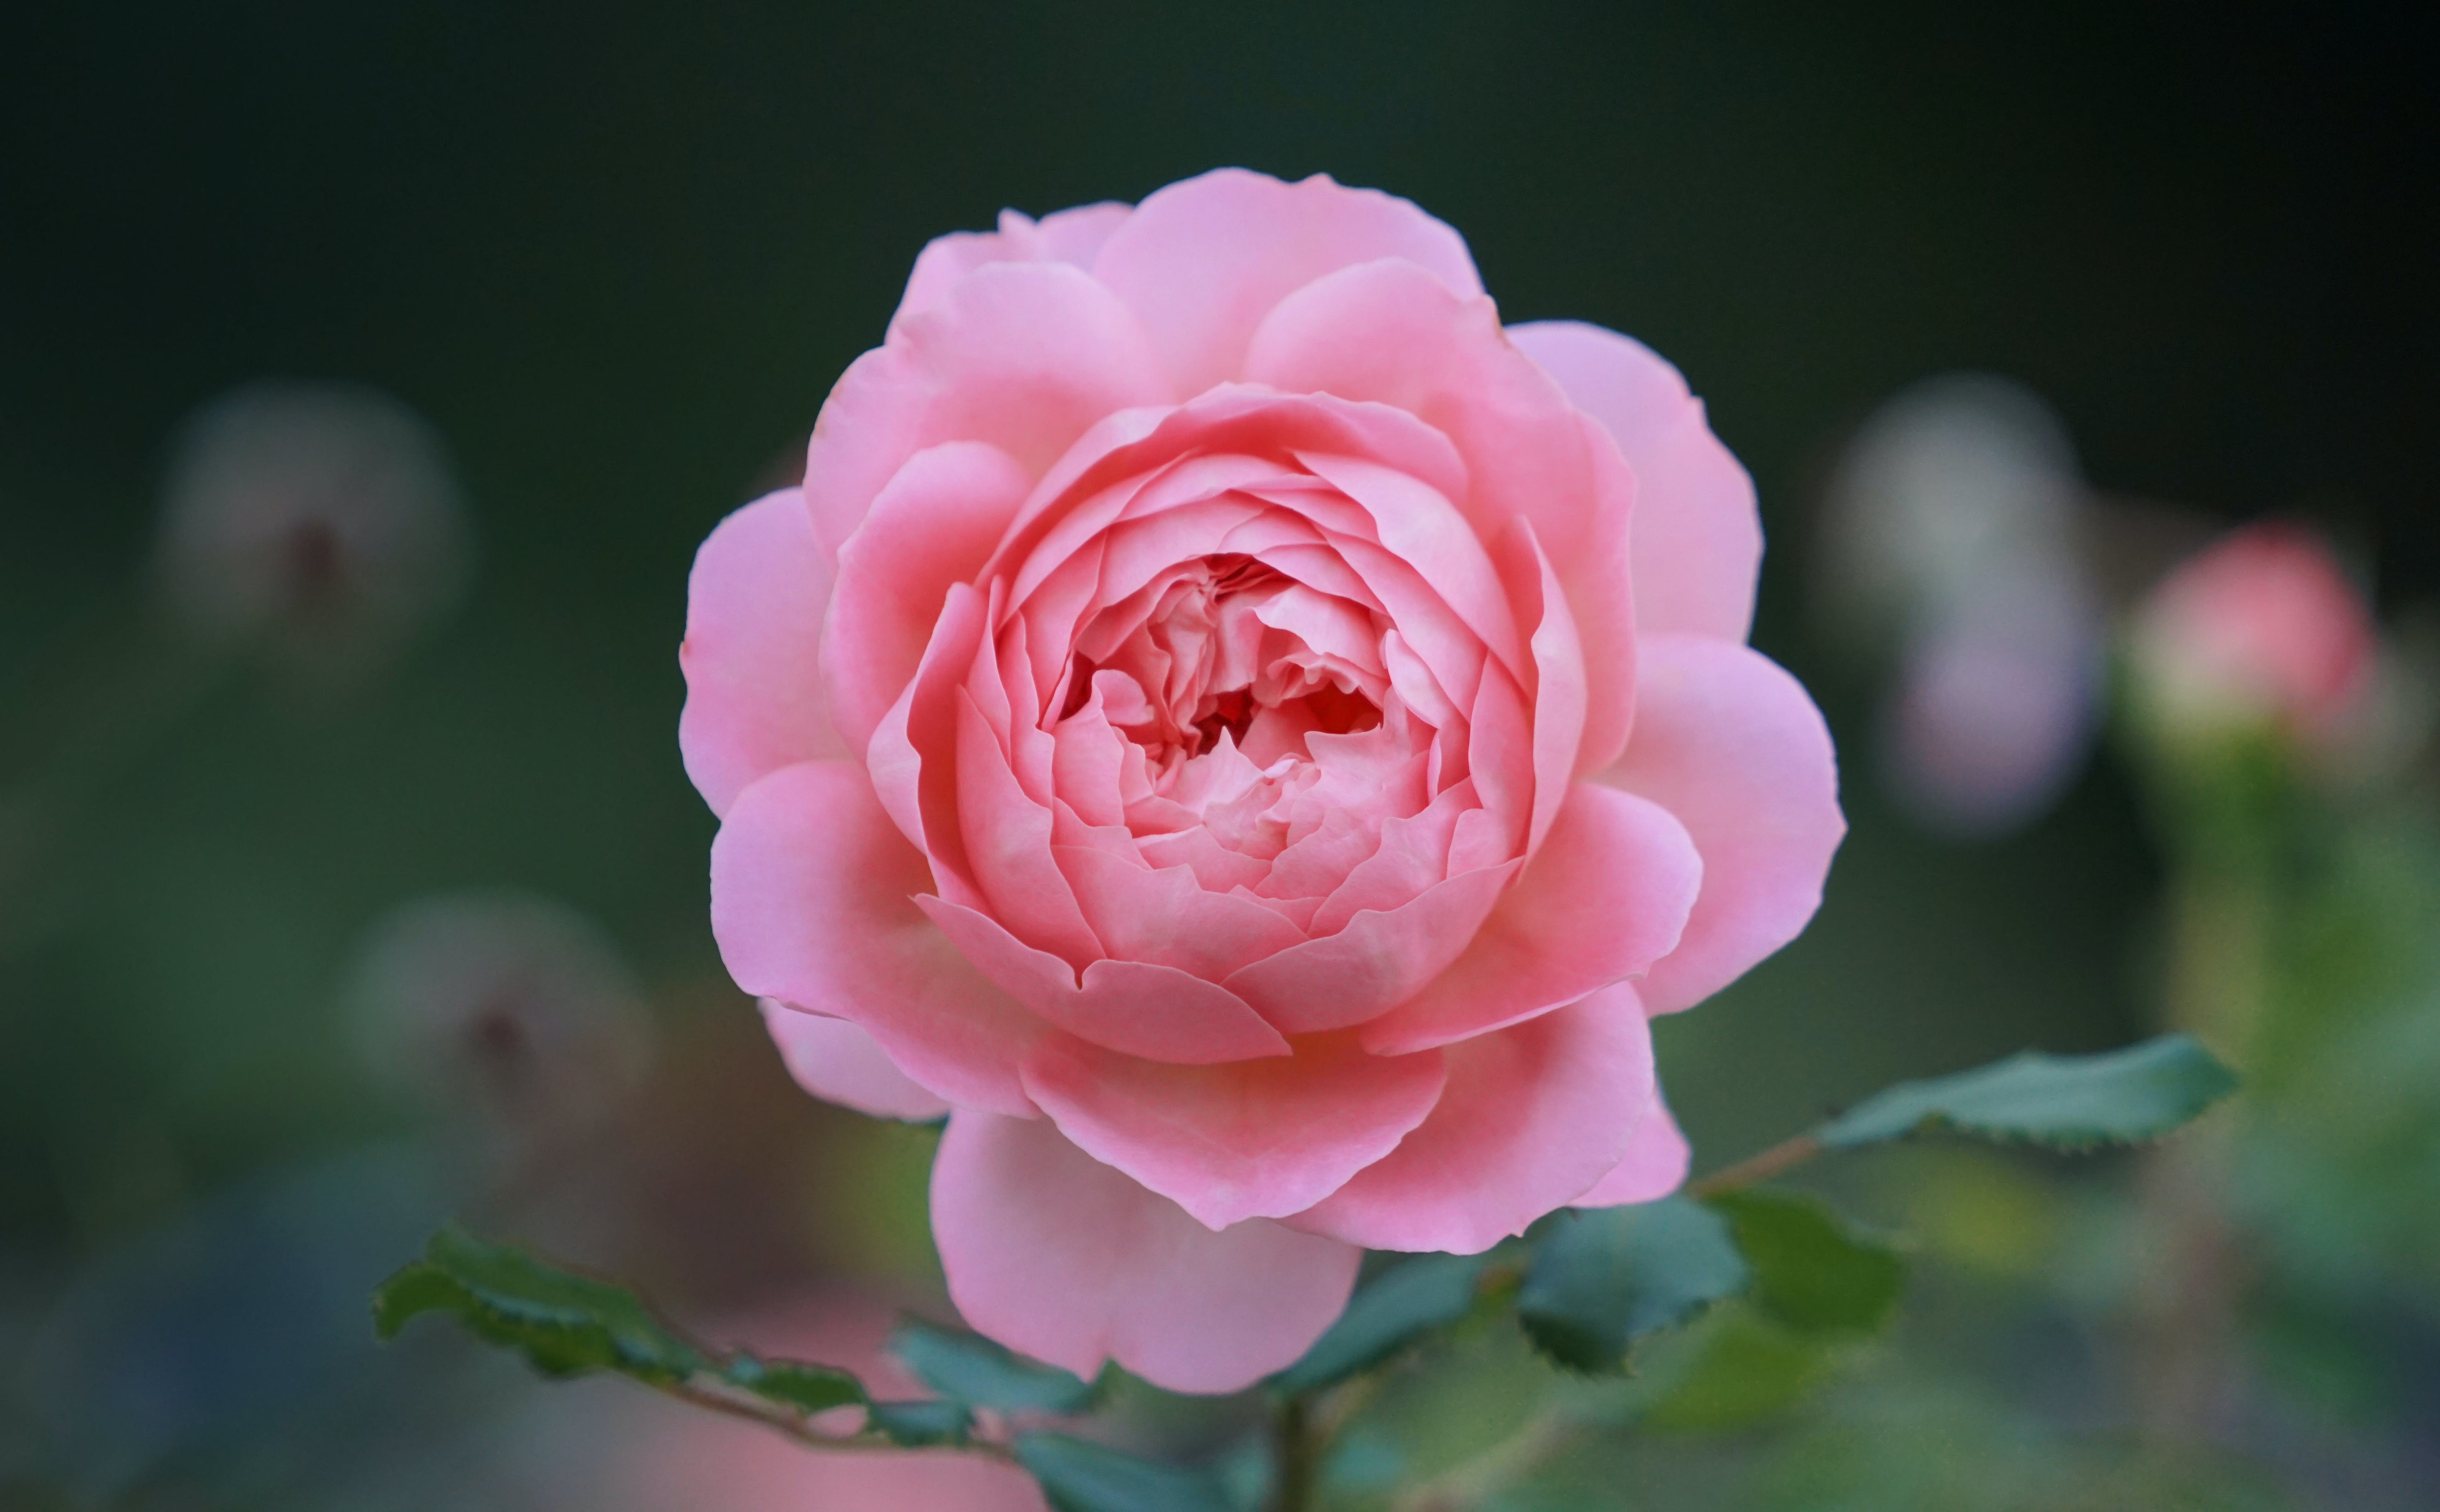 Shallow Depth of Field Photo of Pink Rose Flower